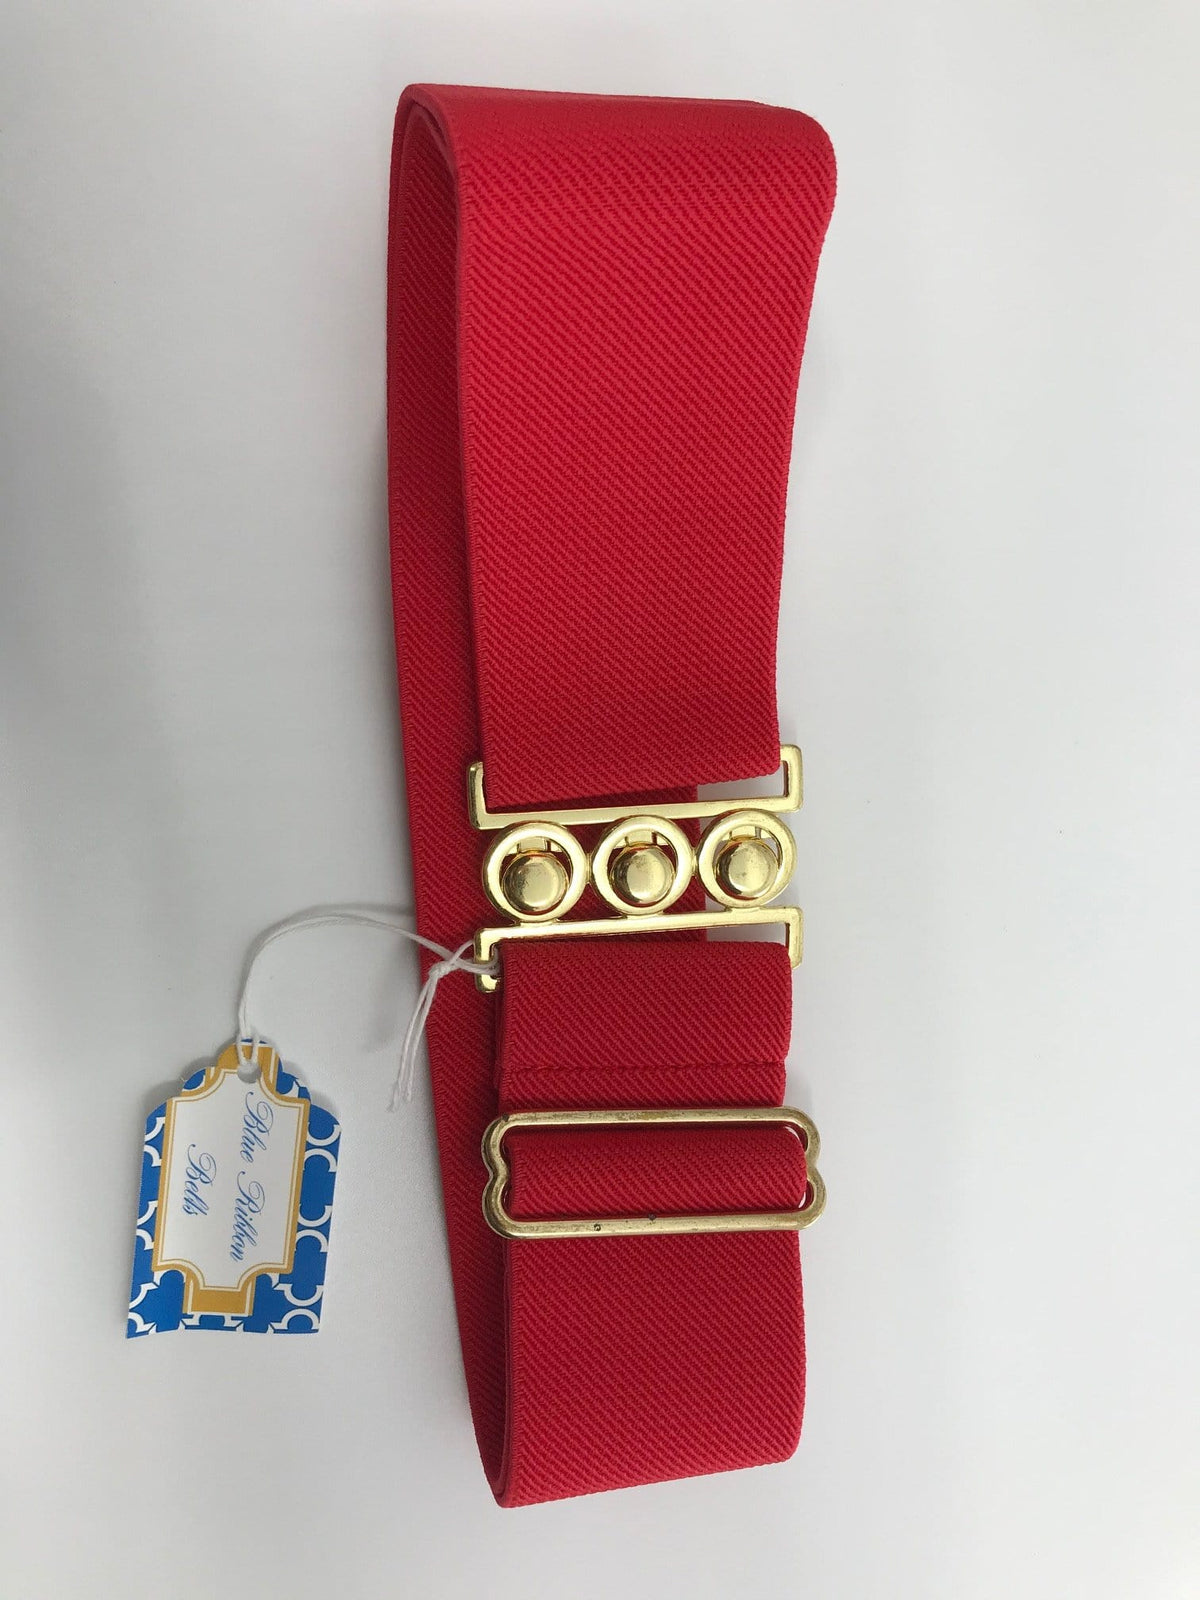 Blue Ribbon Belts Belt Red with Triple Circle Gold Blue Ribbon Belts - 2 Inch equestrian team apparel online tack store mobile tack store custom farm apparel custom show stable clothing equestrian lifestyle horse show clothing riding clothes horses equestrian tack store